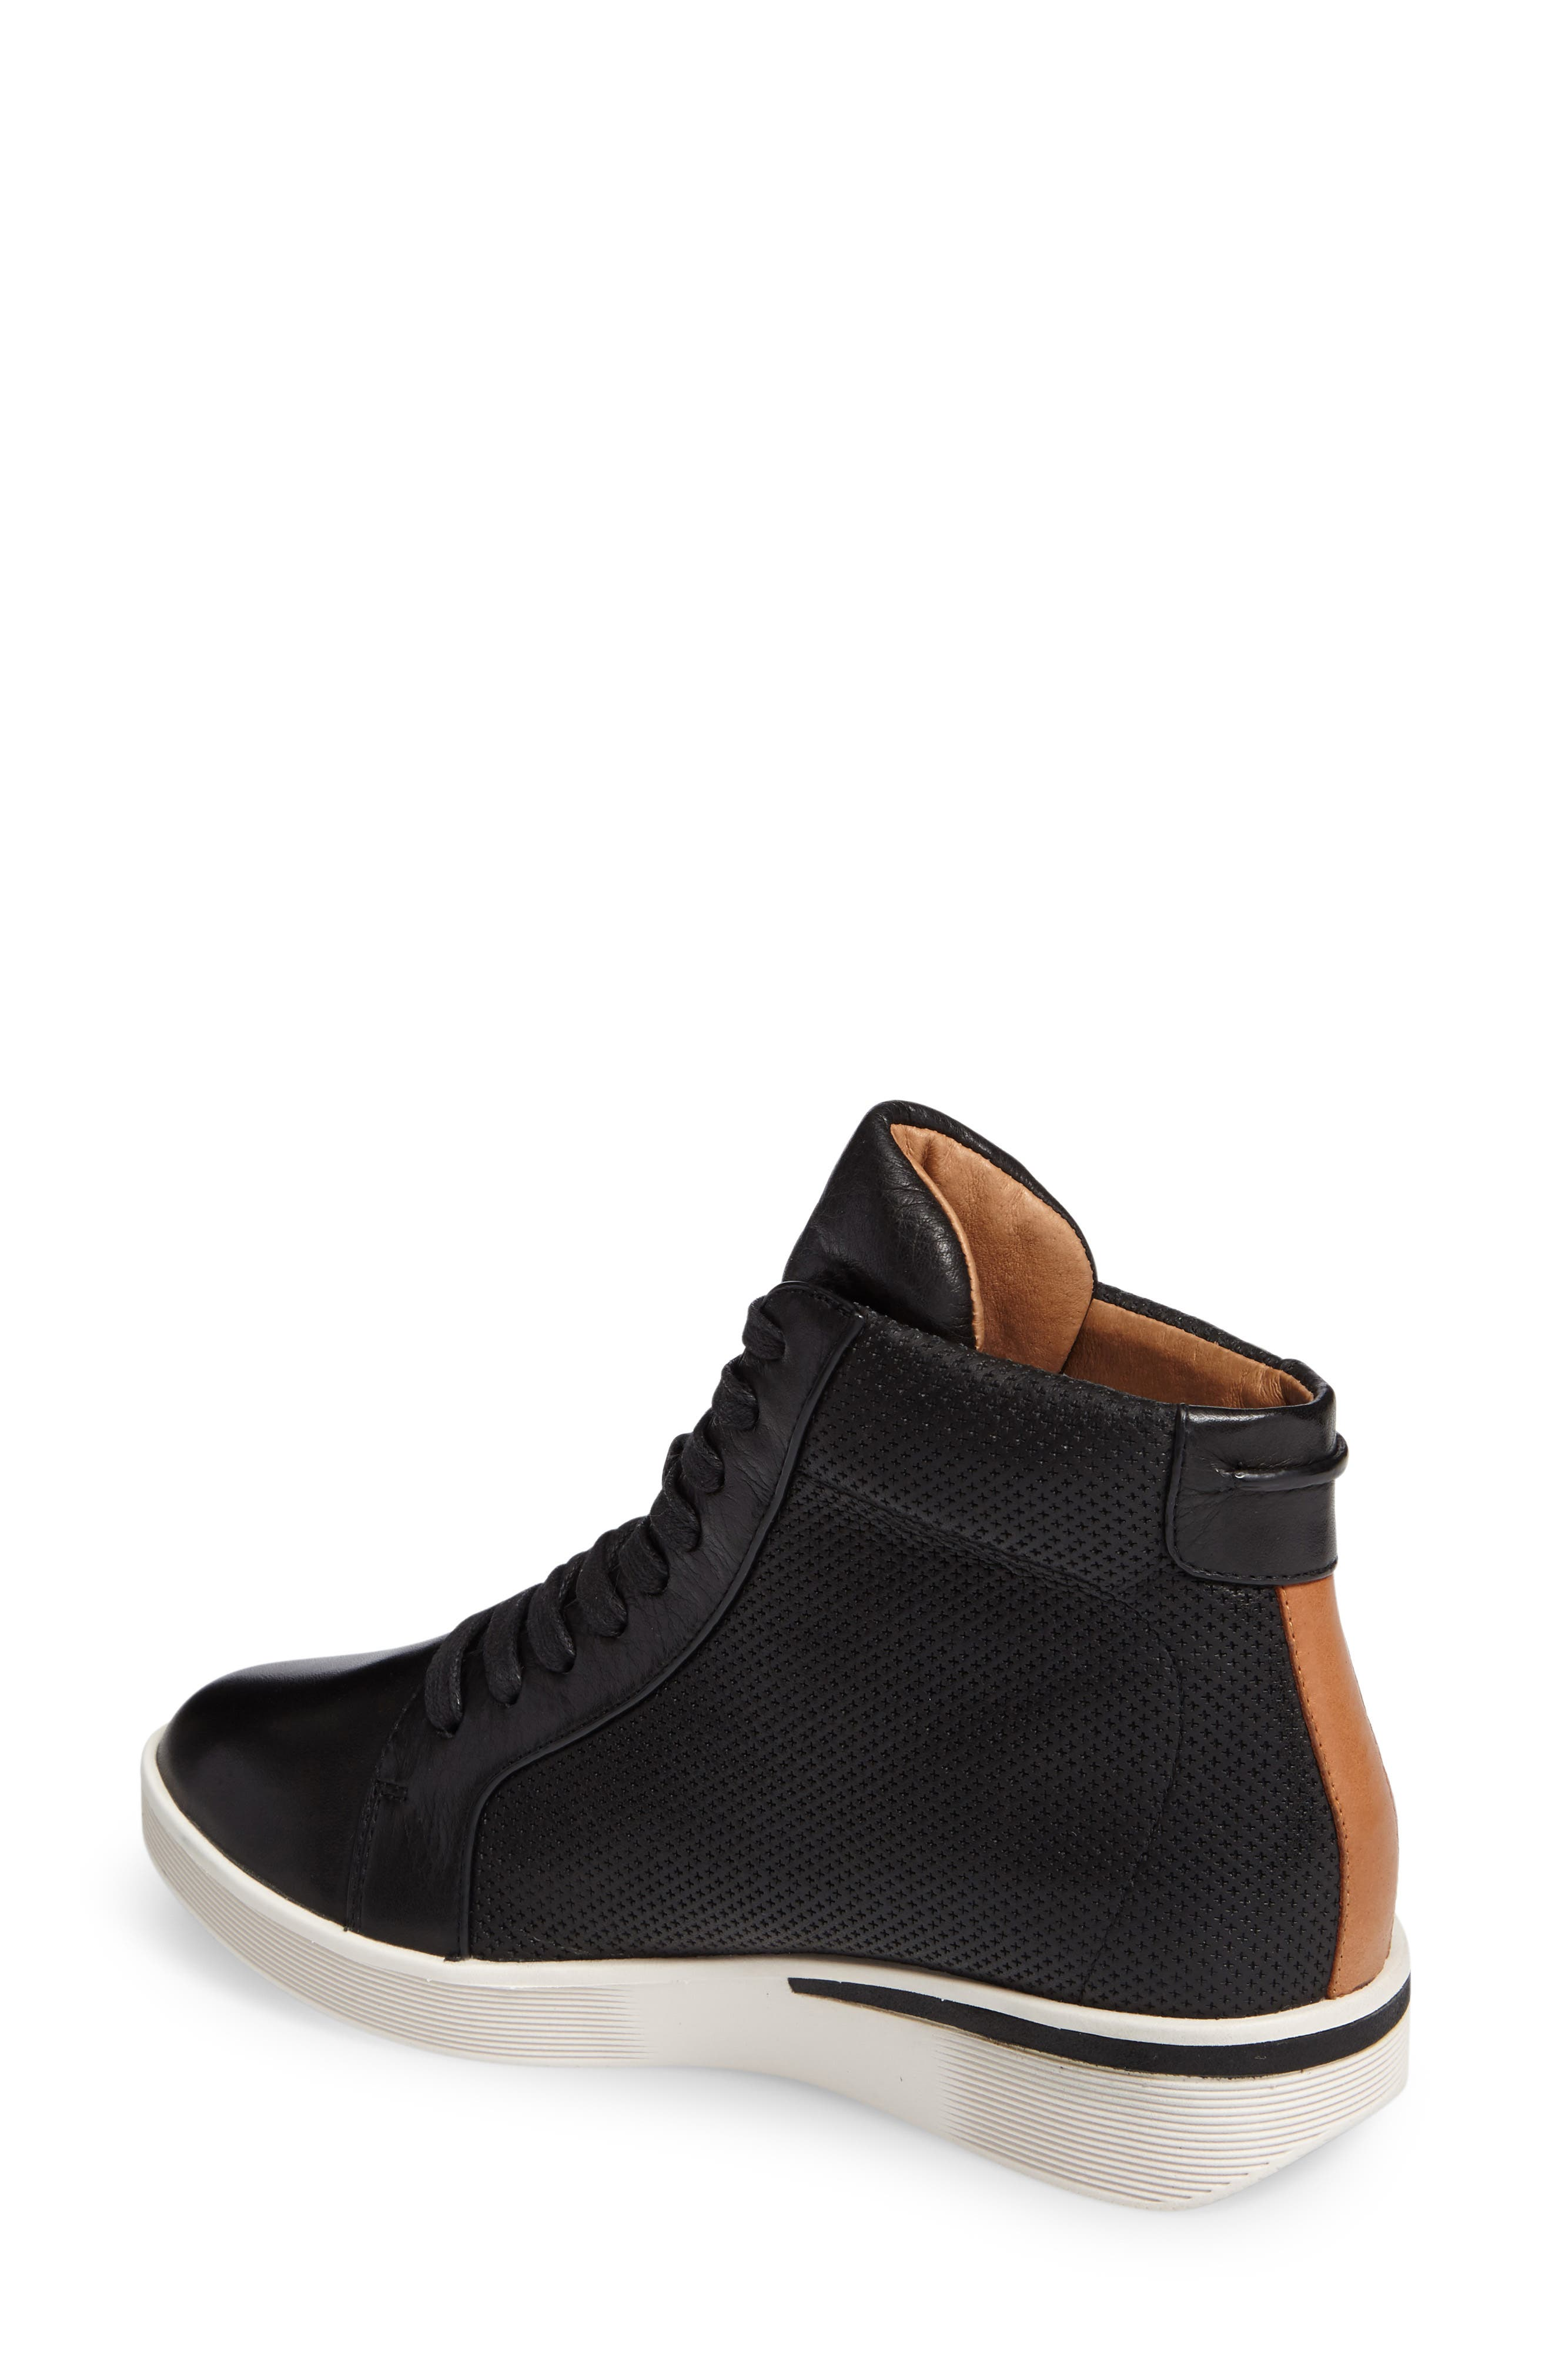 Gentle Souls Helka High Top Sneaker,                             Alternate thumbnail 2, color,                             001